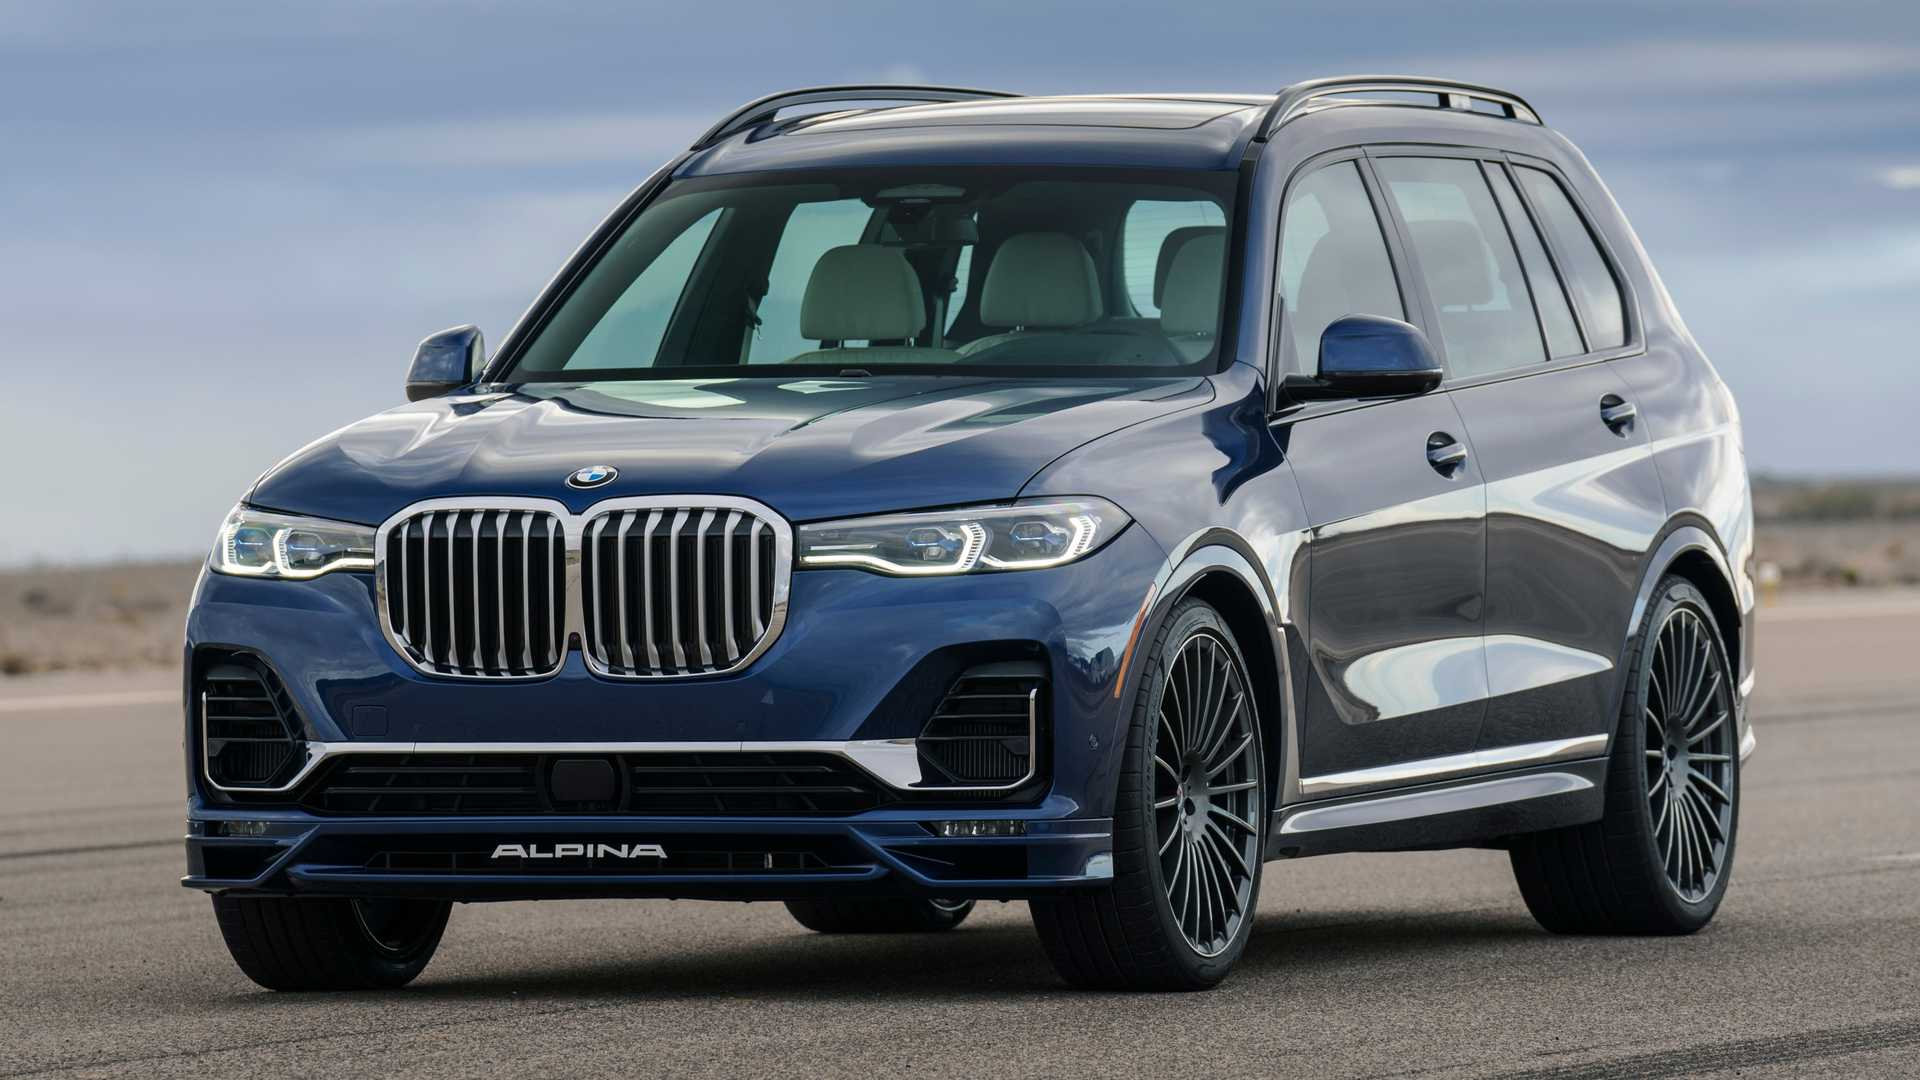 2021 BMW Alpina XB7 Debuts With 612 Horsepower, Costs $141,300